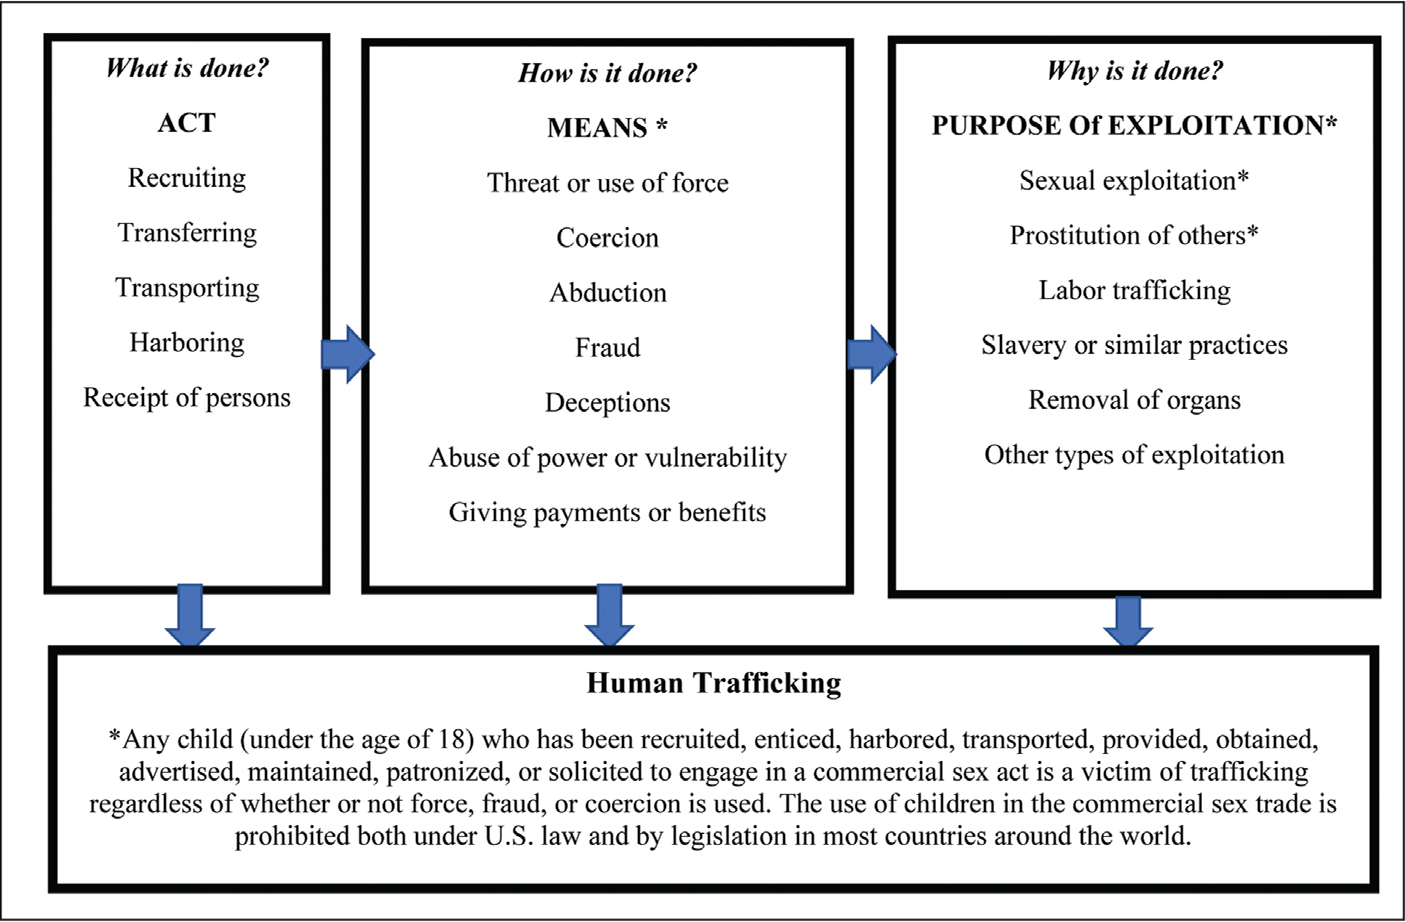 The elements of human trafficking (act, means, and purpose).